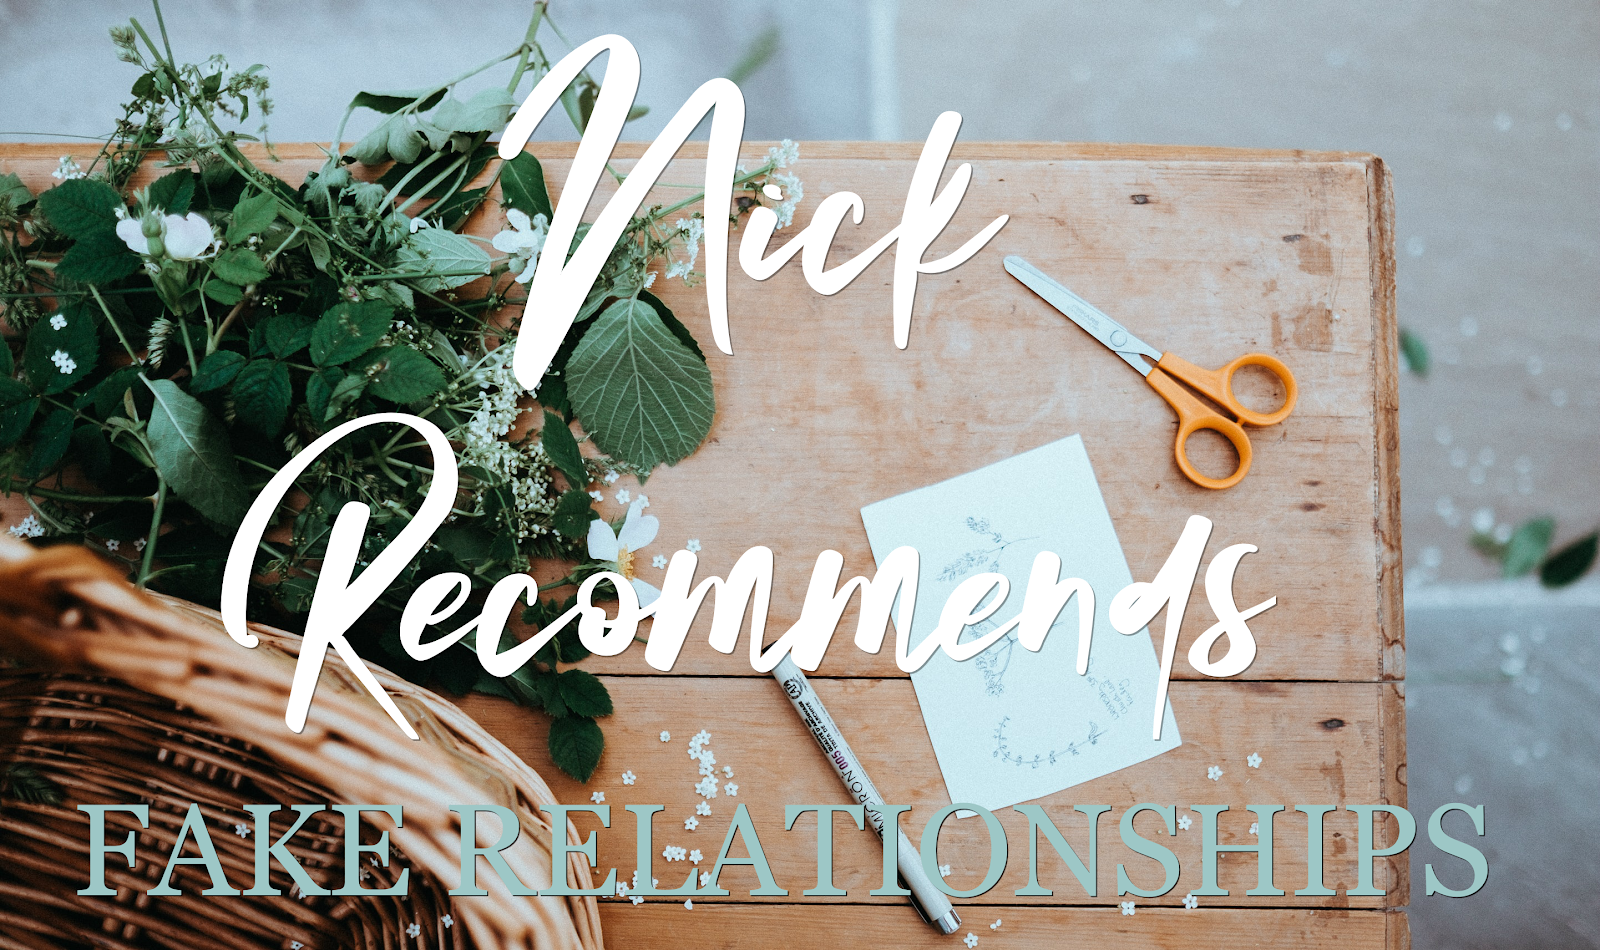 Nick Recommends (1) : Fake Relationships